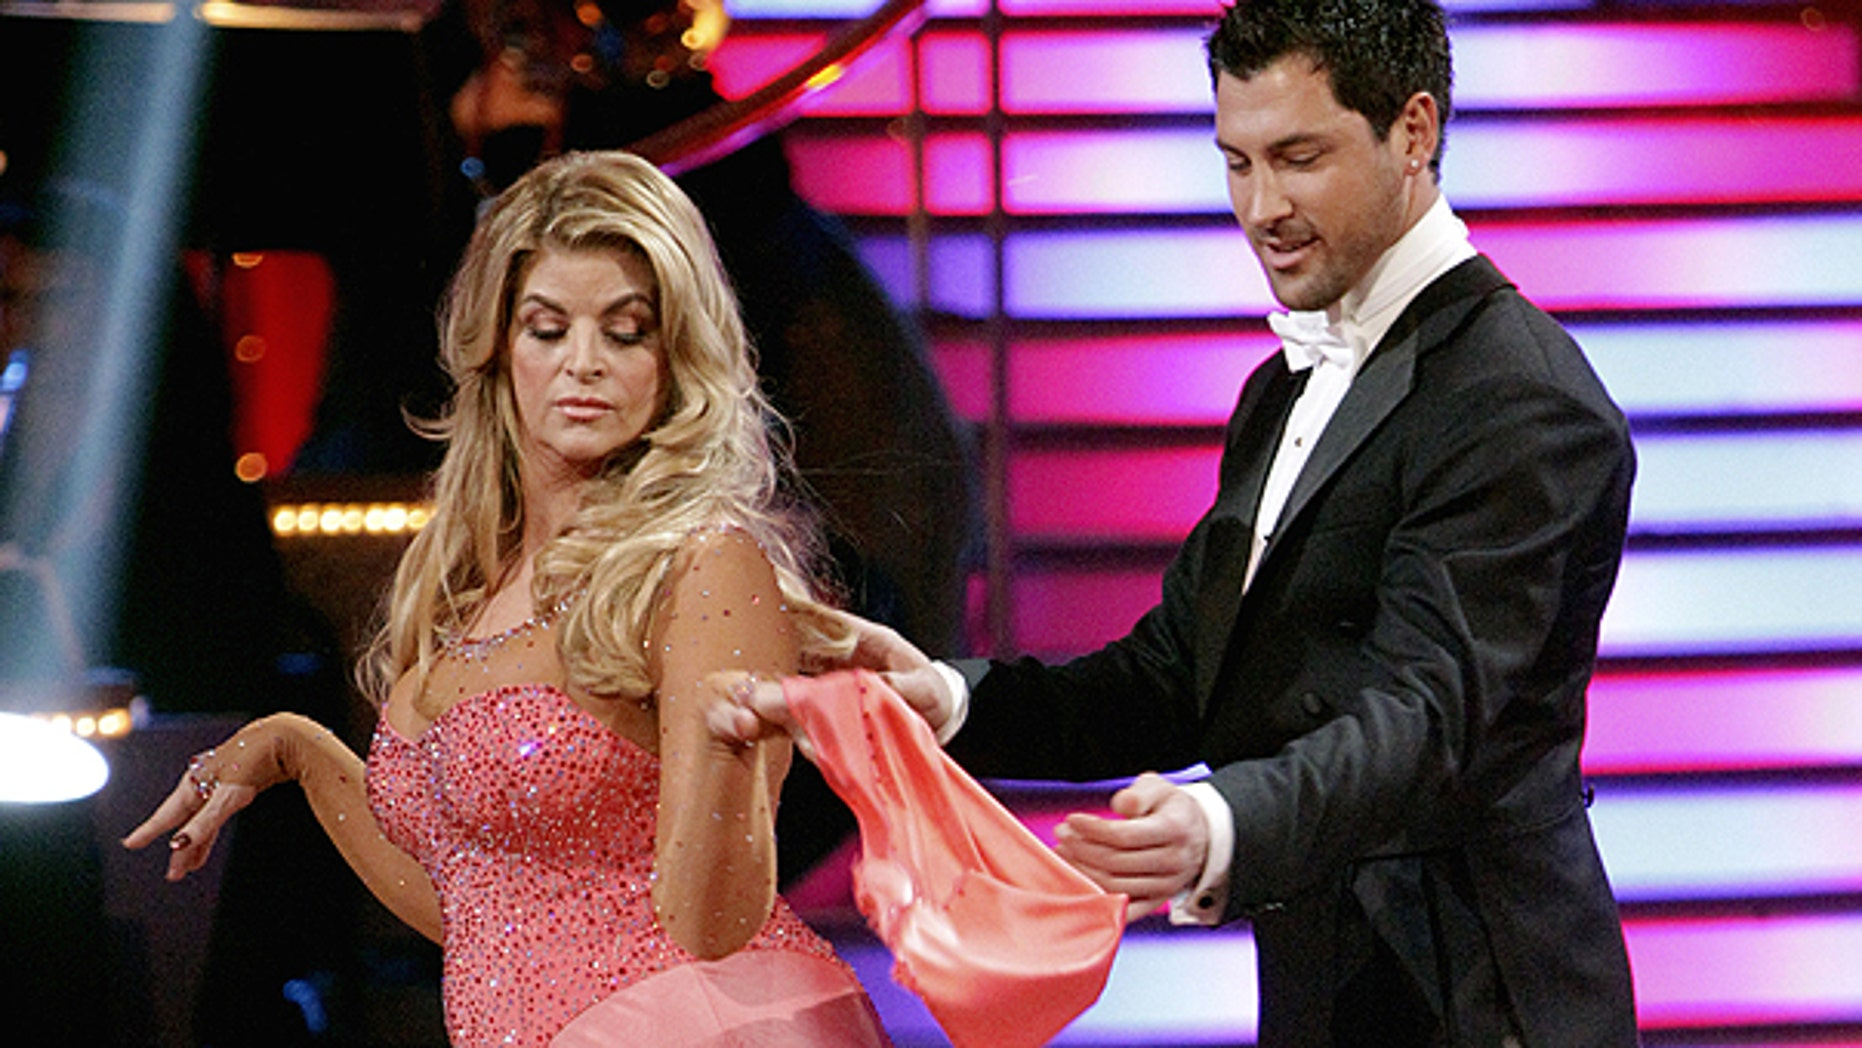 March 28: In this publicity image released by ABC, actress Kirstie Alley, left, and her partner Maksim Chmerkovskiy perform on the celebrity dance competition series 'Dancing With the Stars' in Los Angeles.